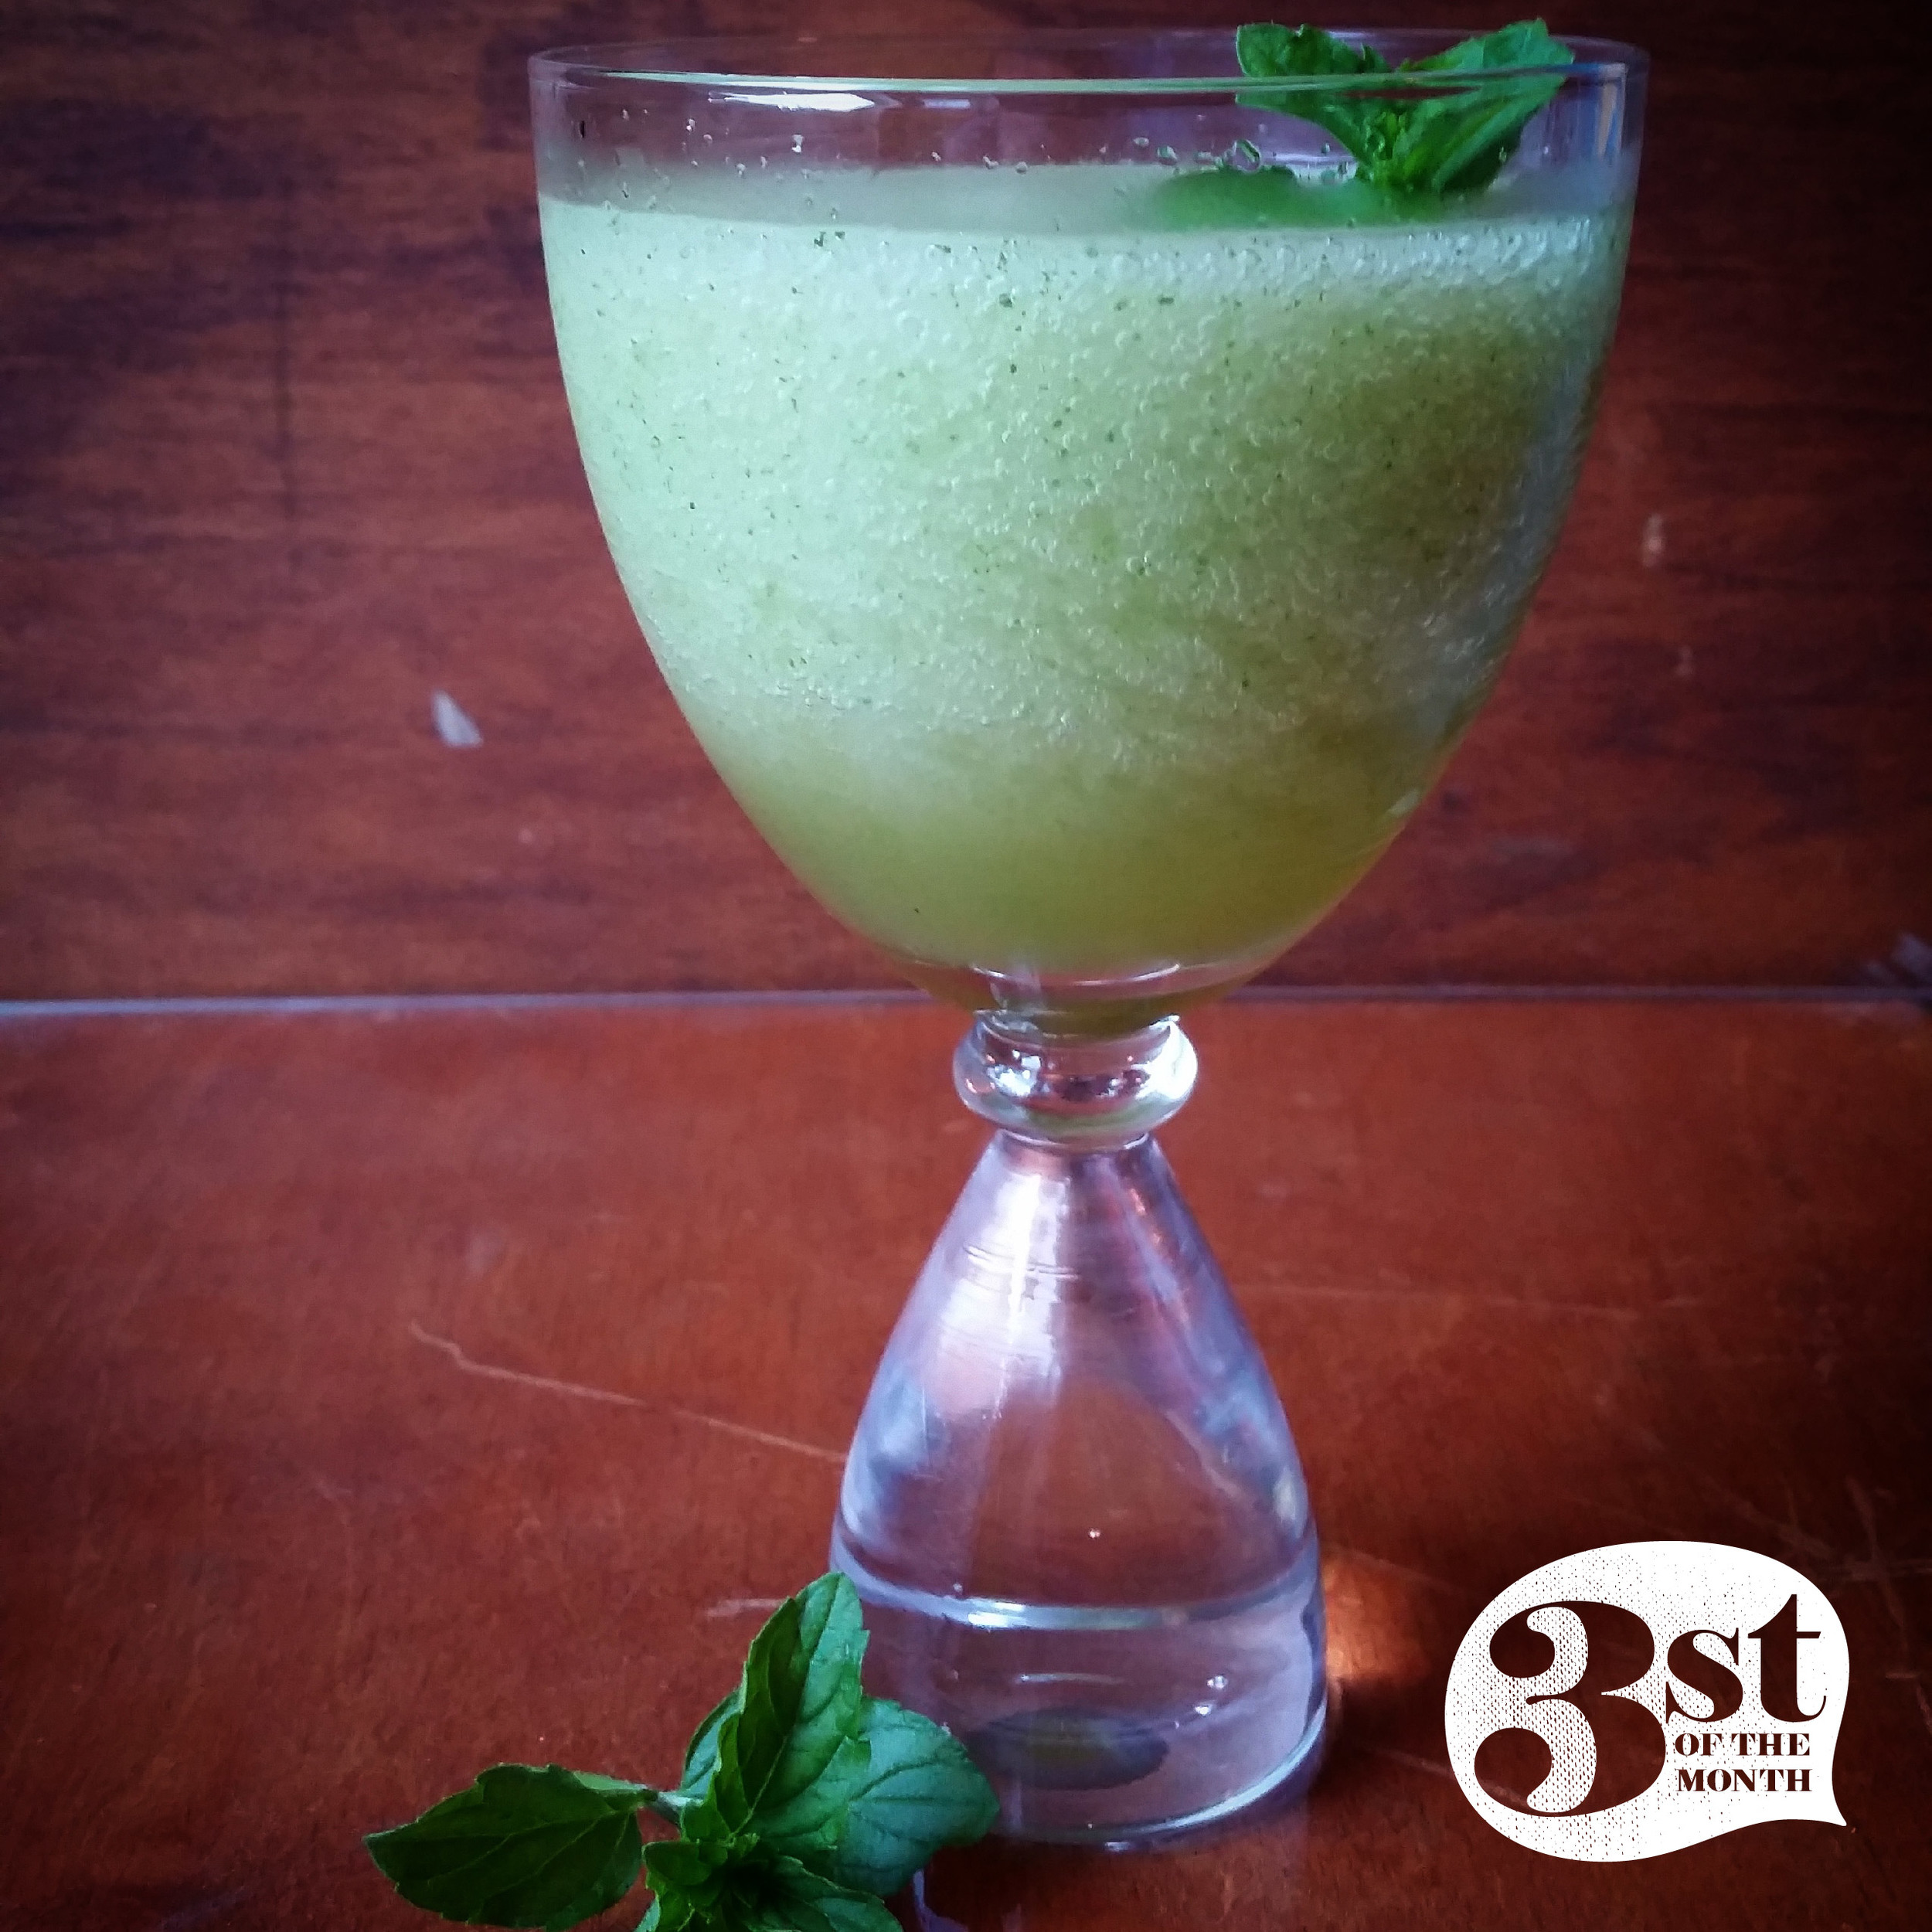 3st of the Month presents: The Bourbon Limonana - a mint-lemon-bourbon slushy